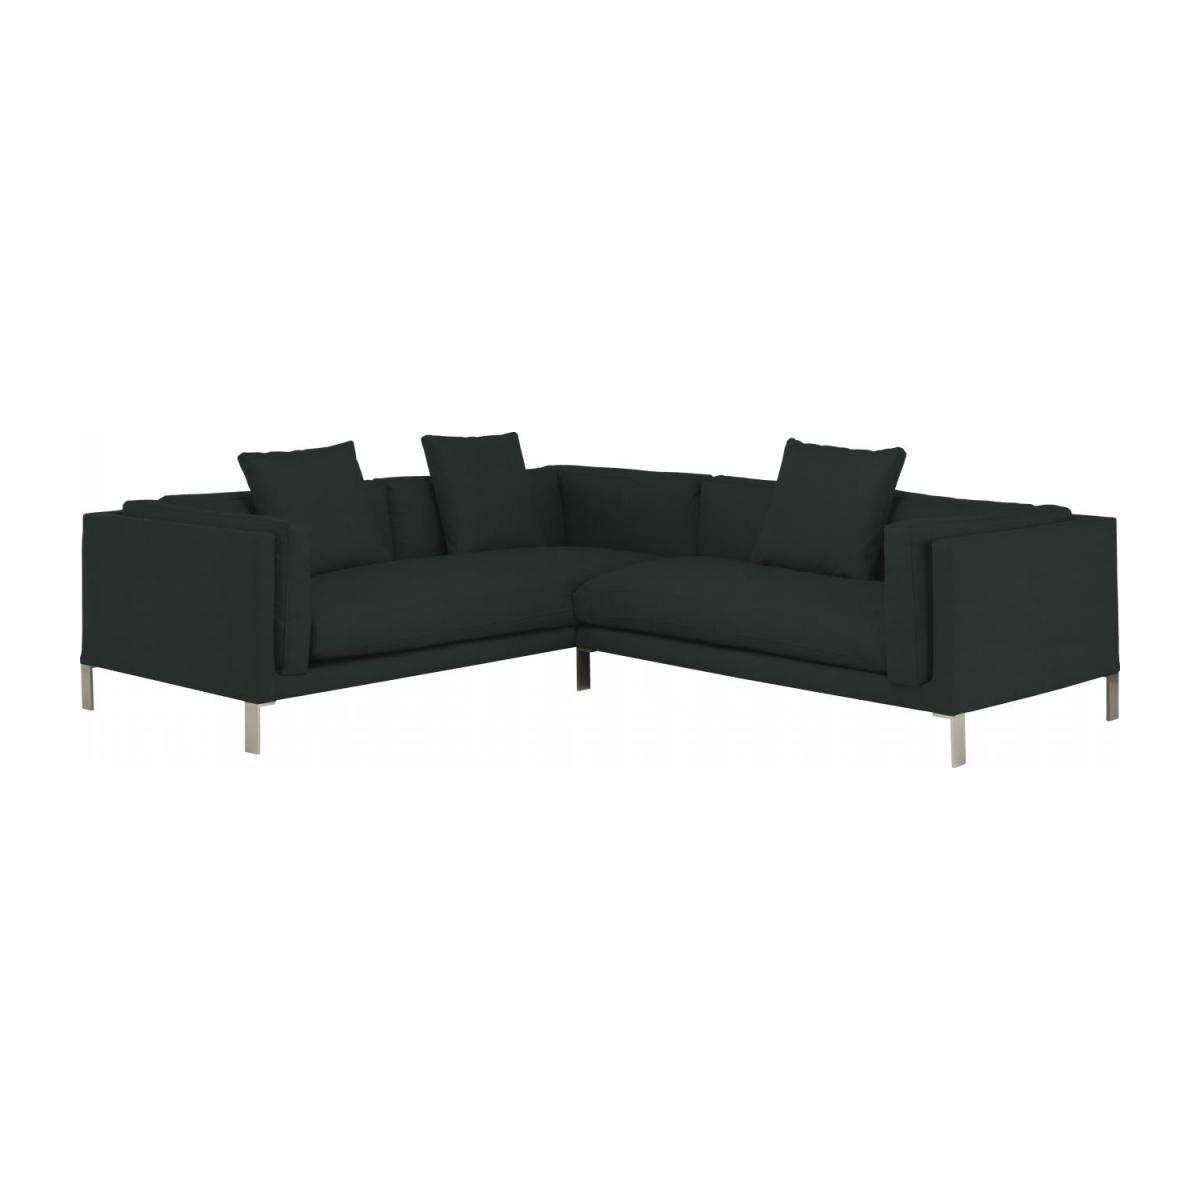 Leather riight-arm 2 seater sofa n°5